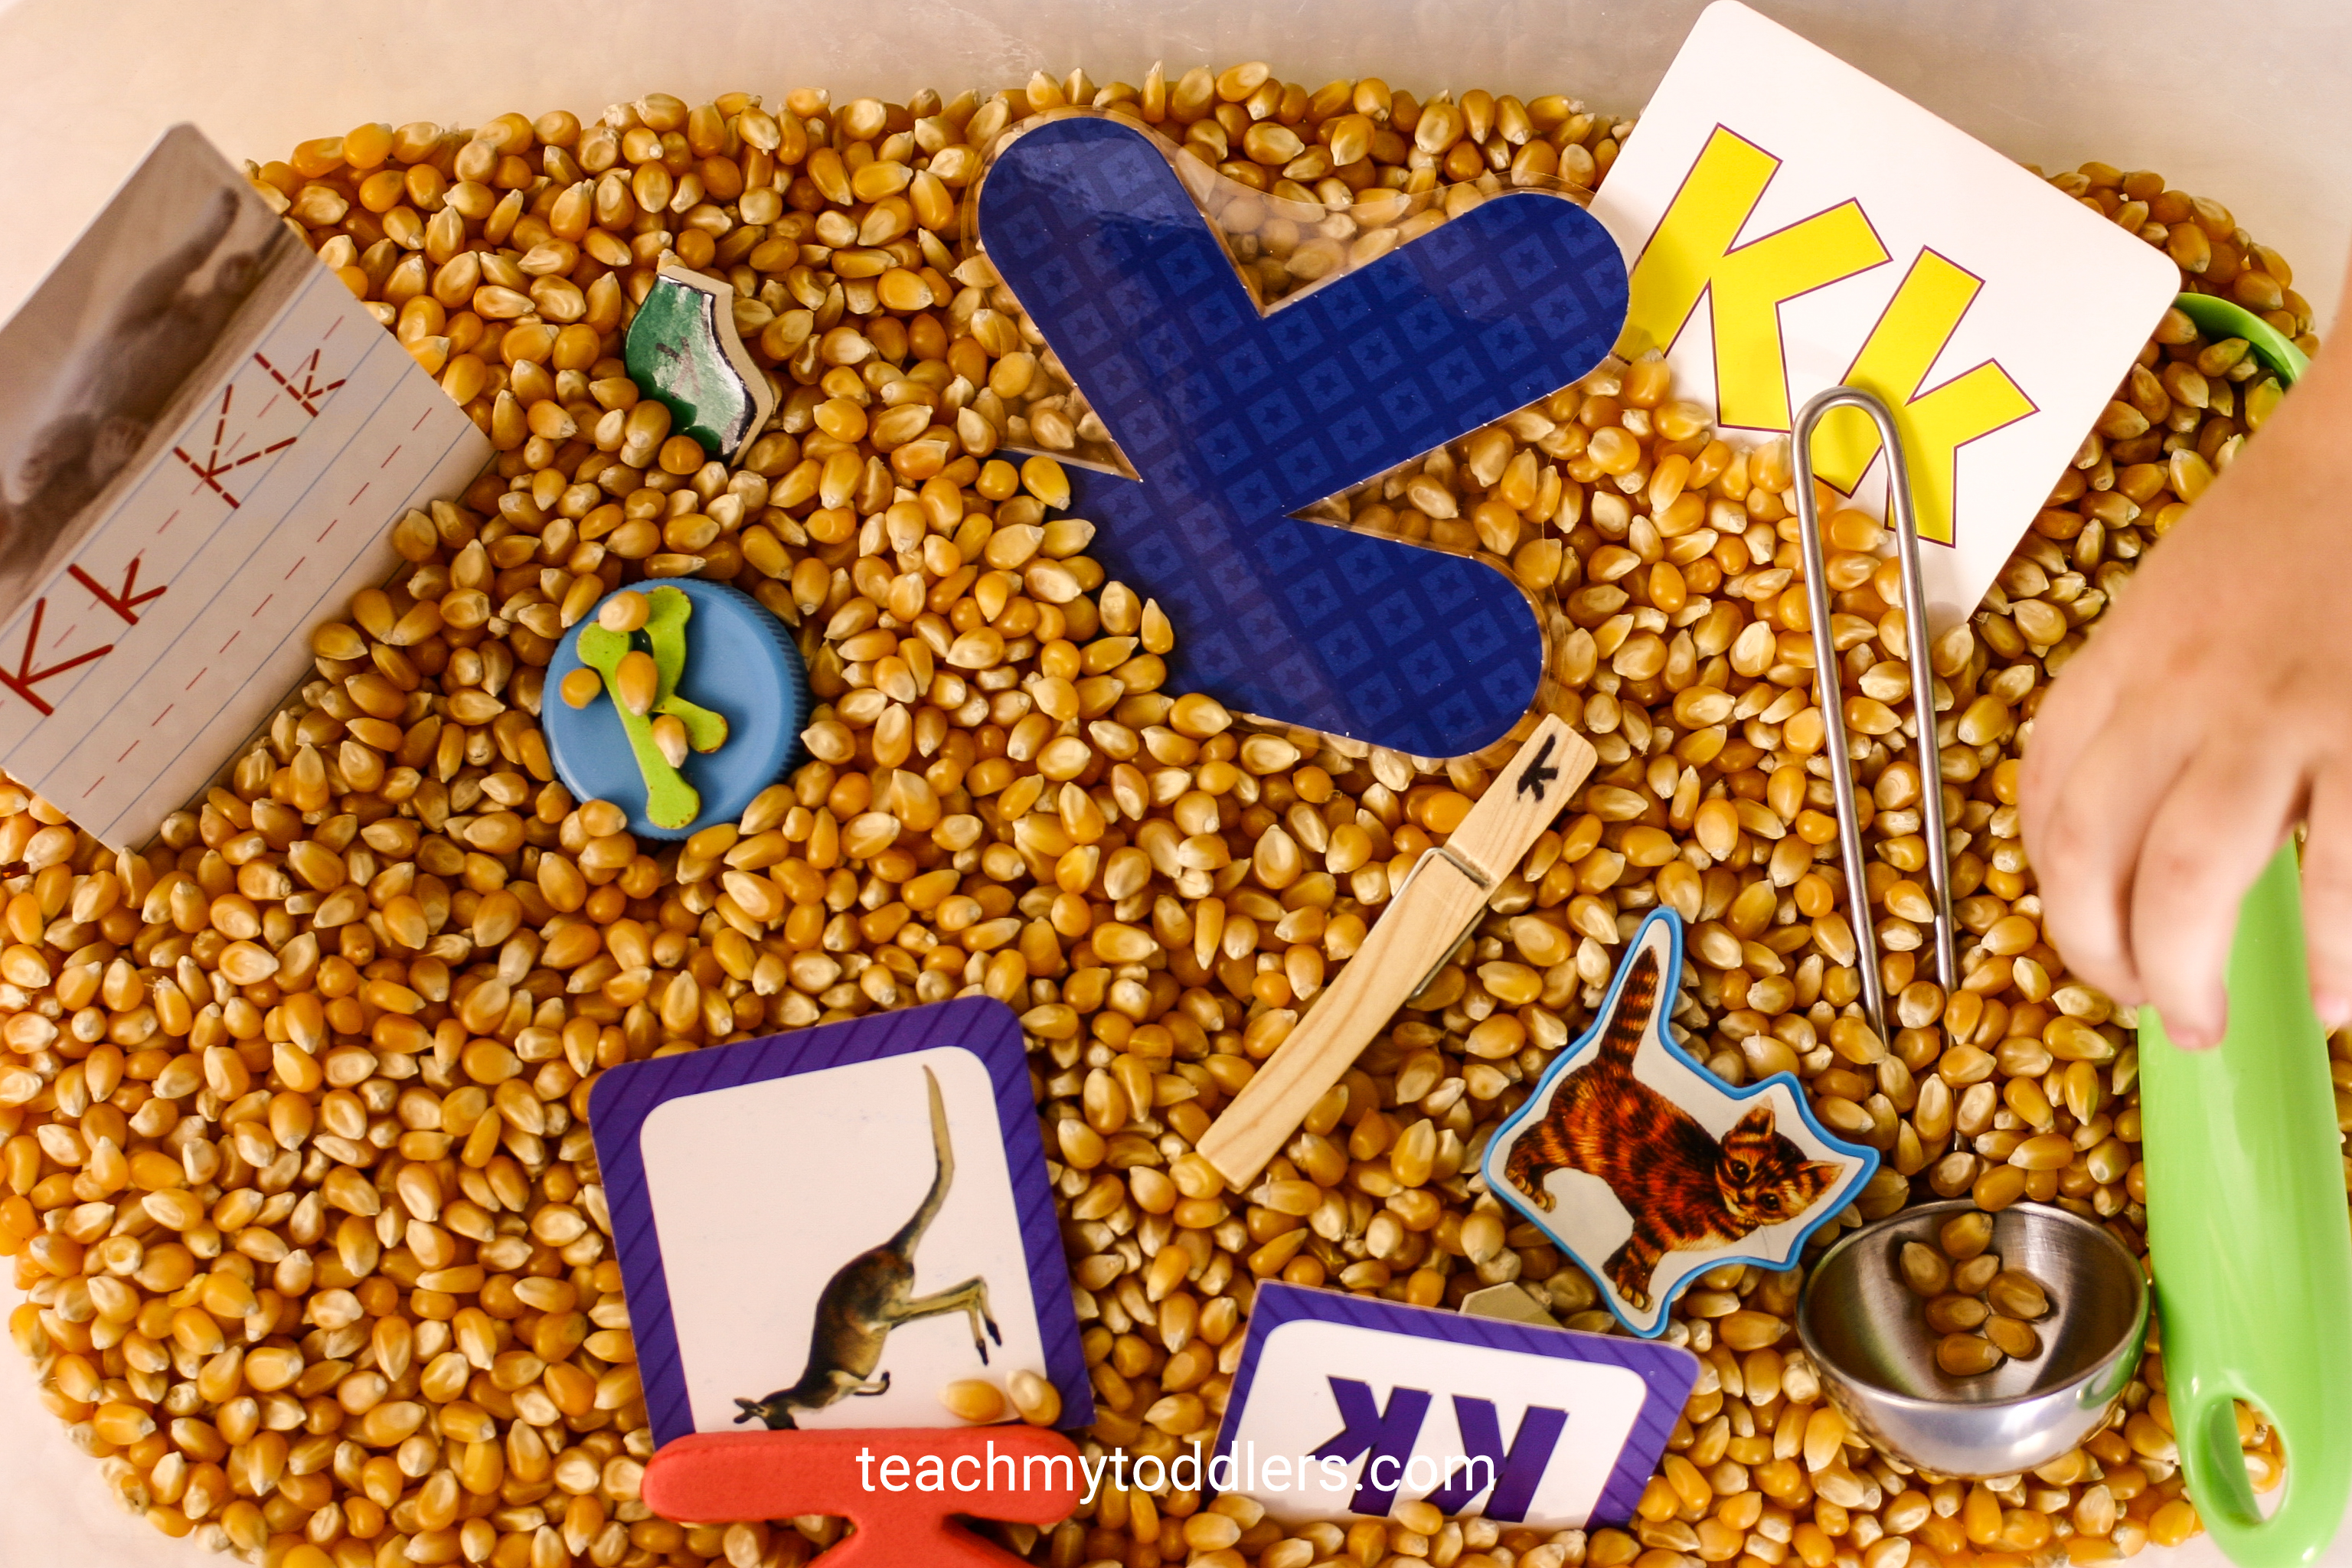 Discover how to use these kitchen activities to teach toddlers the letter k